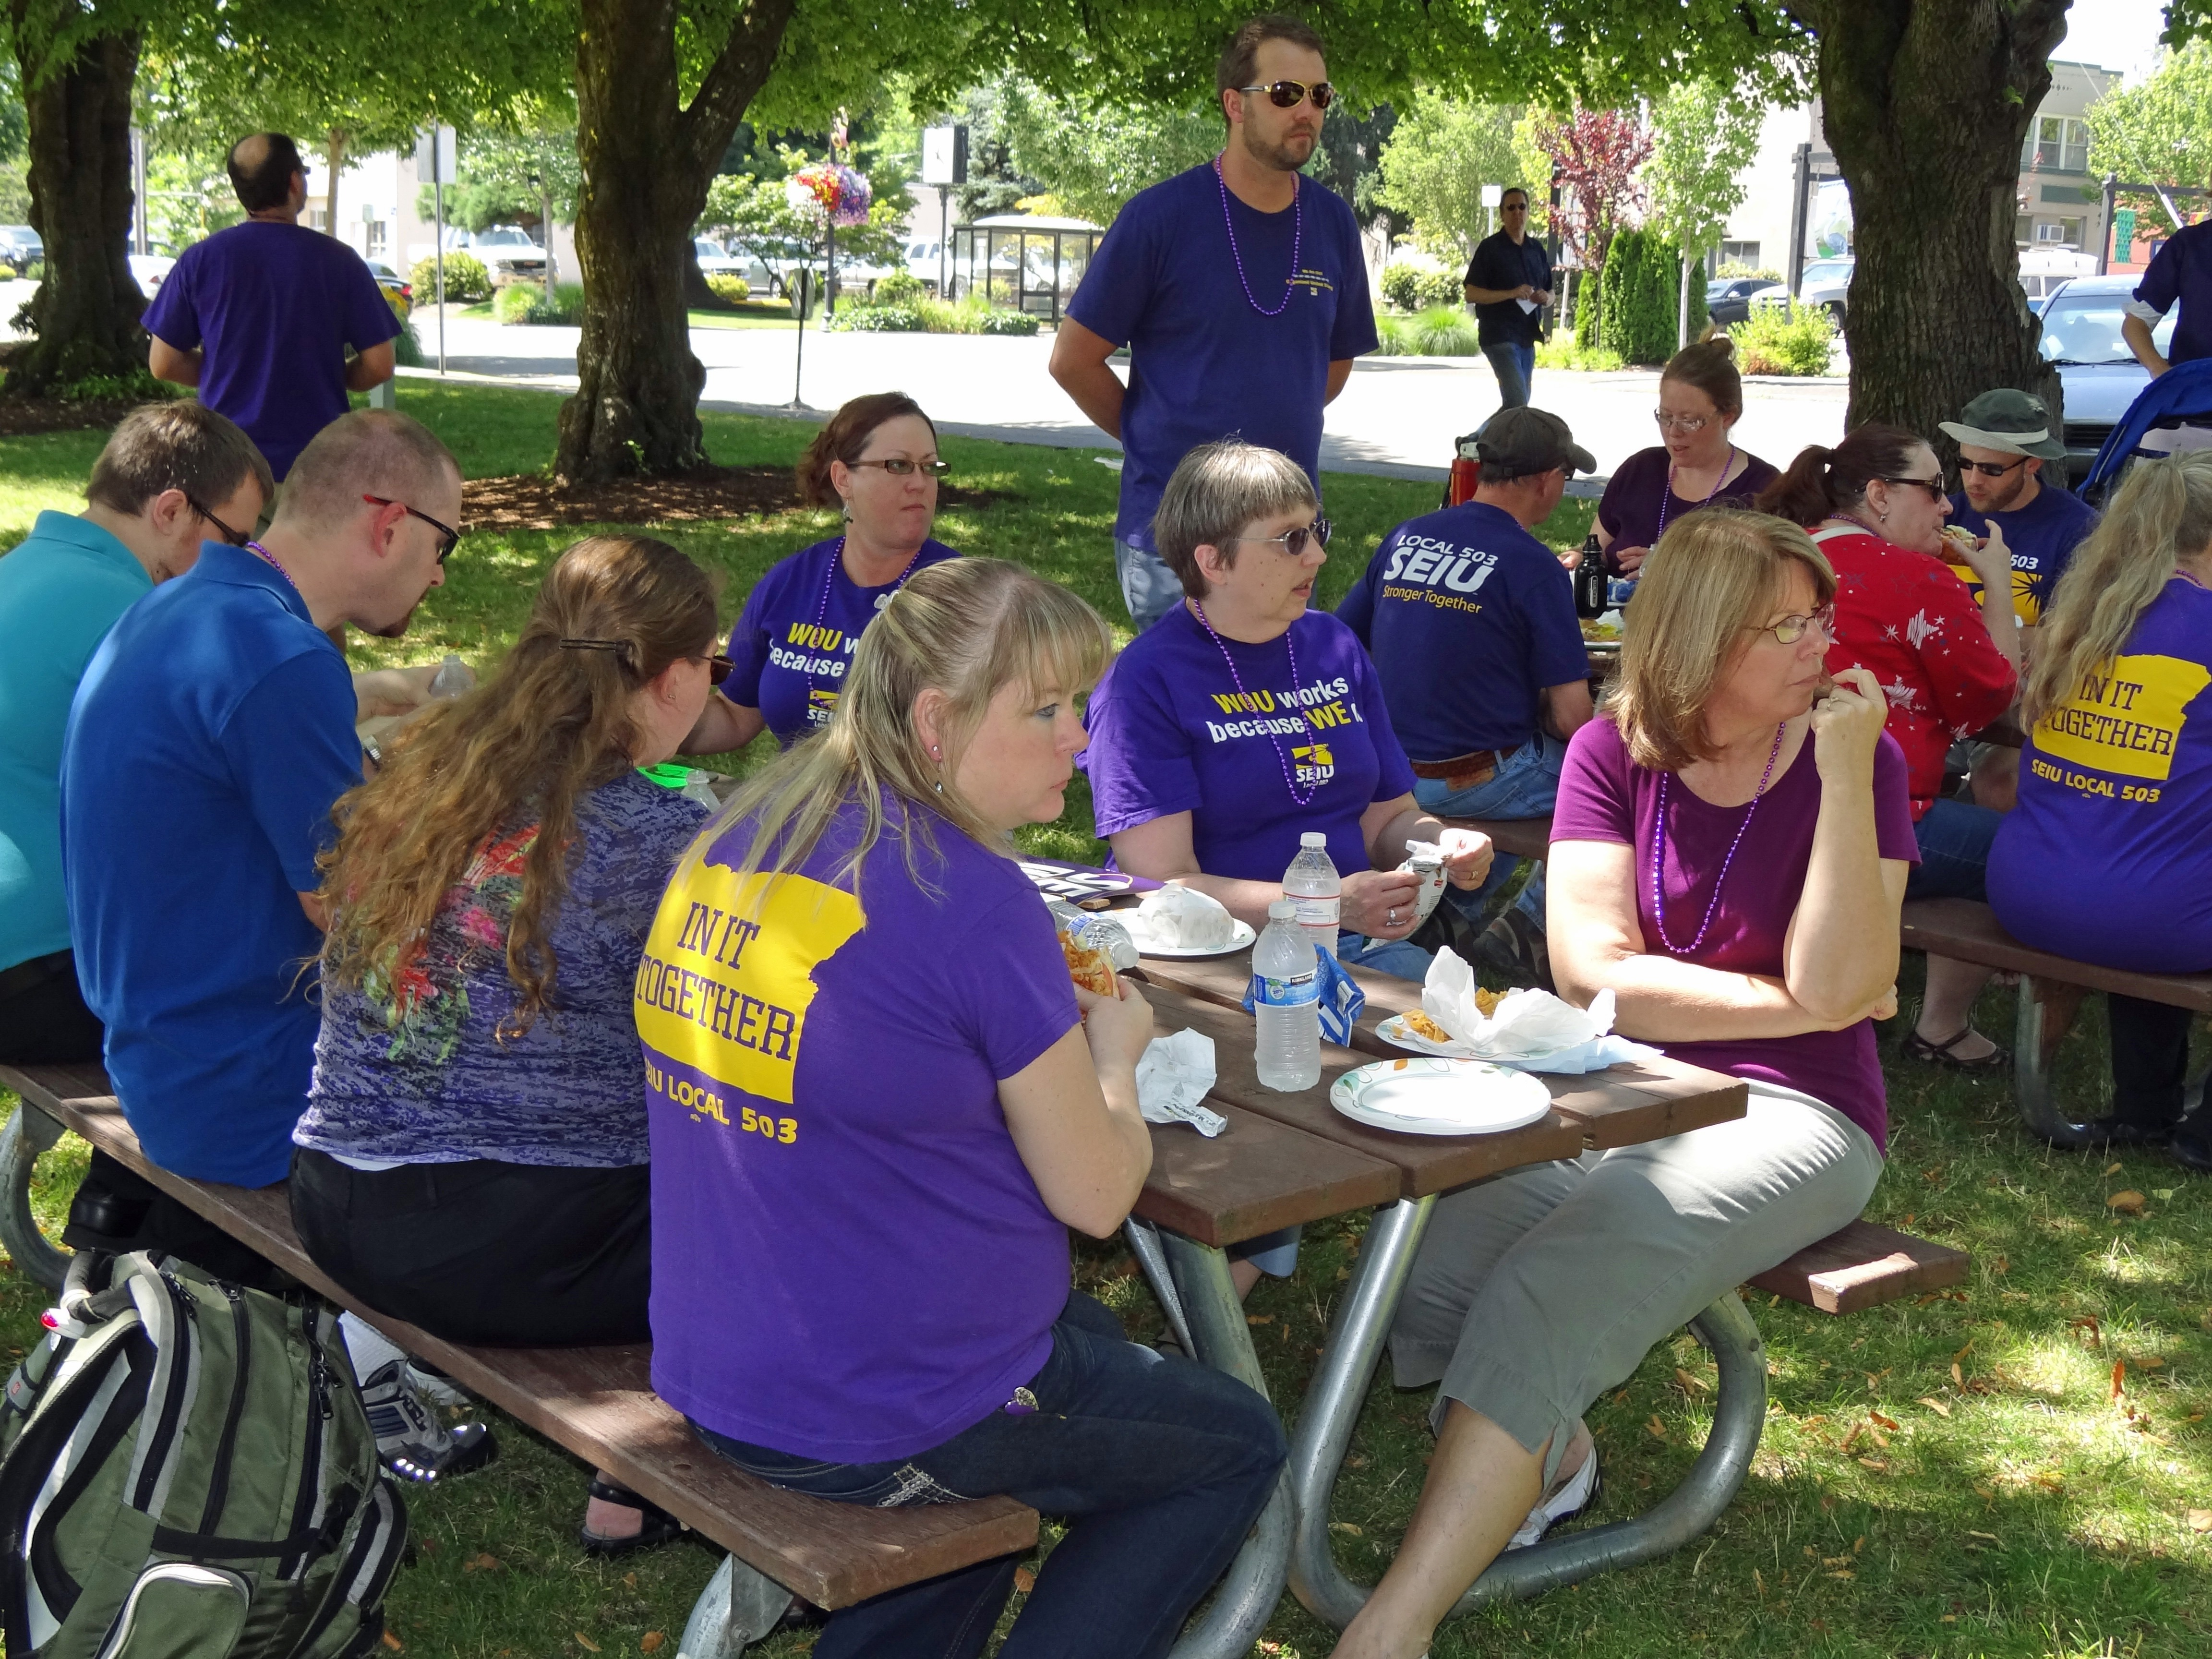 Photo of SEIU members having lunch and listening to updates